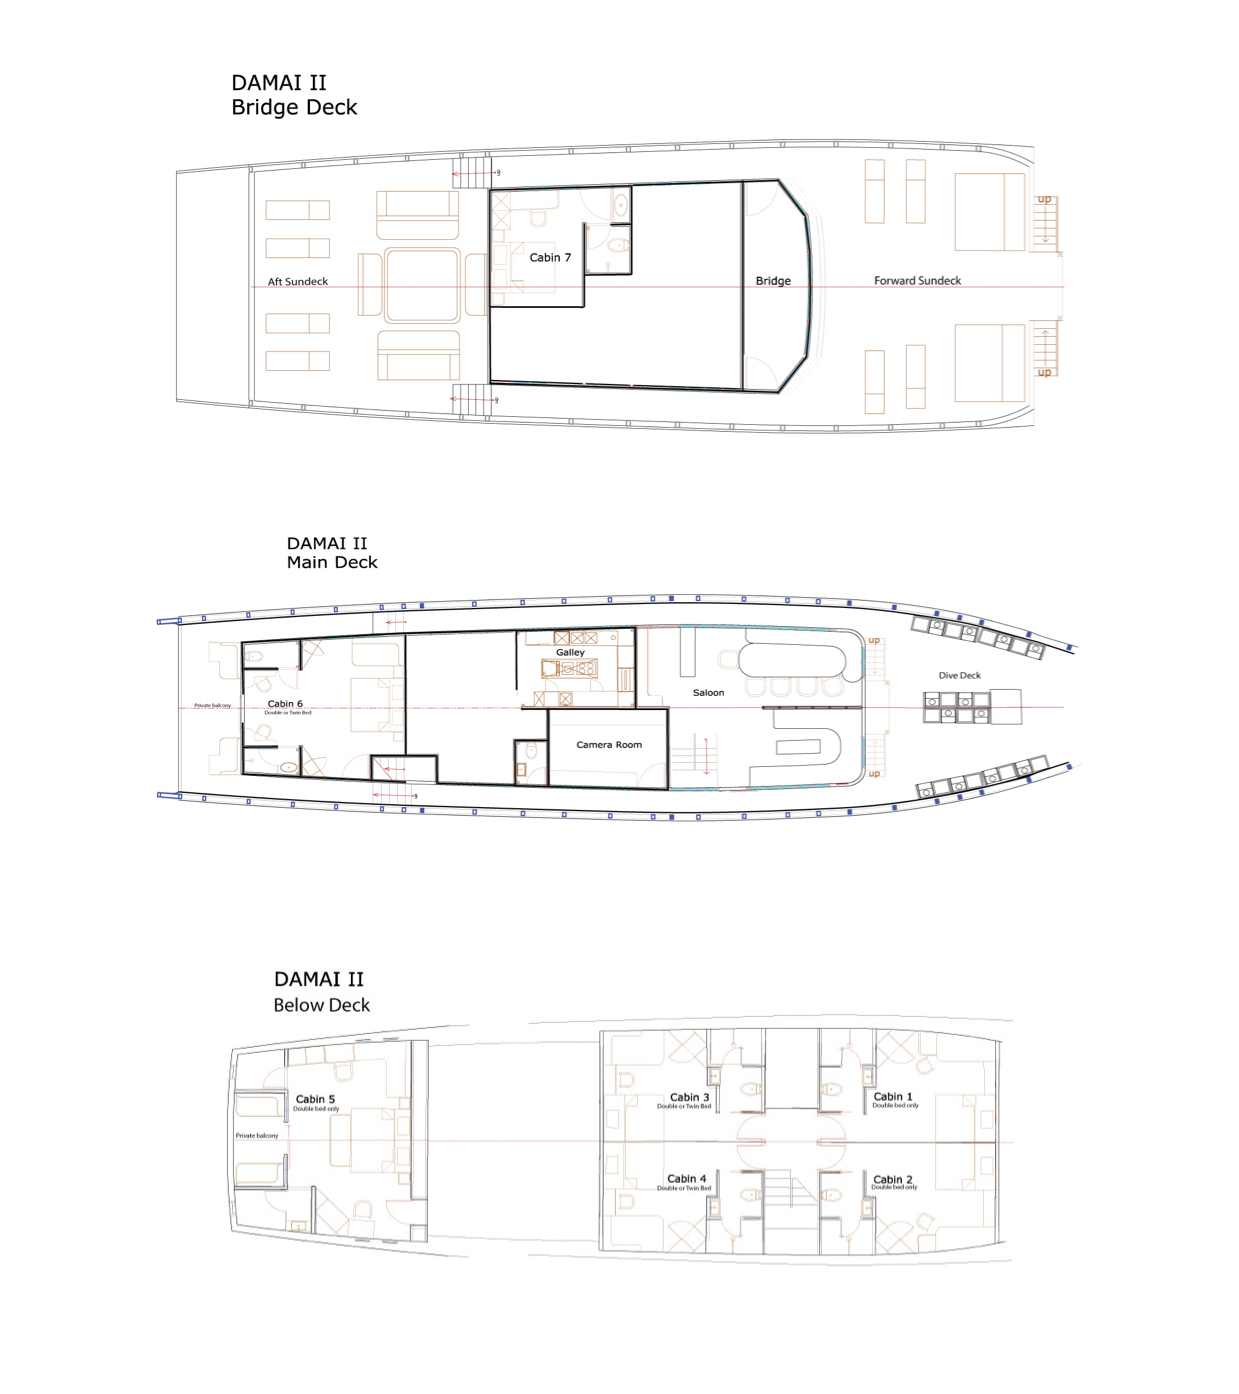 Damai II Deck Plan floorplan